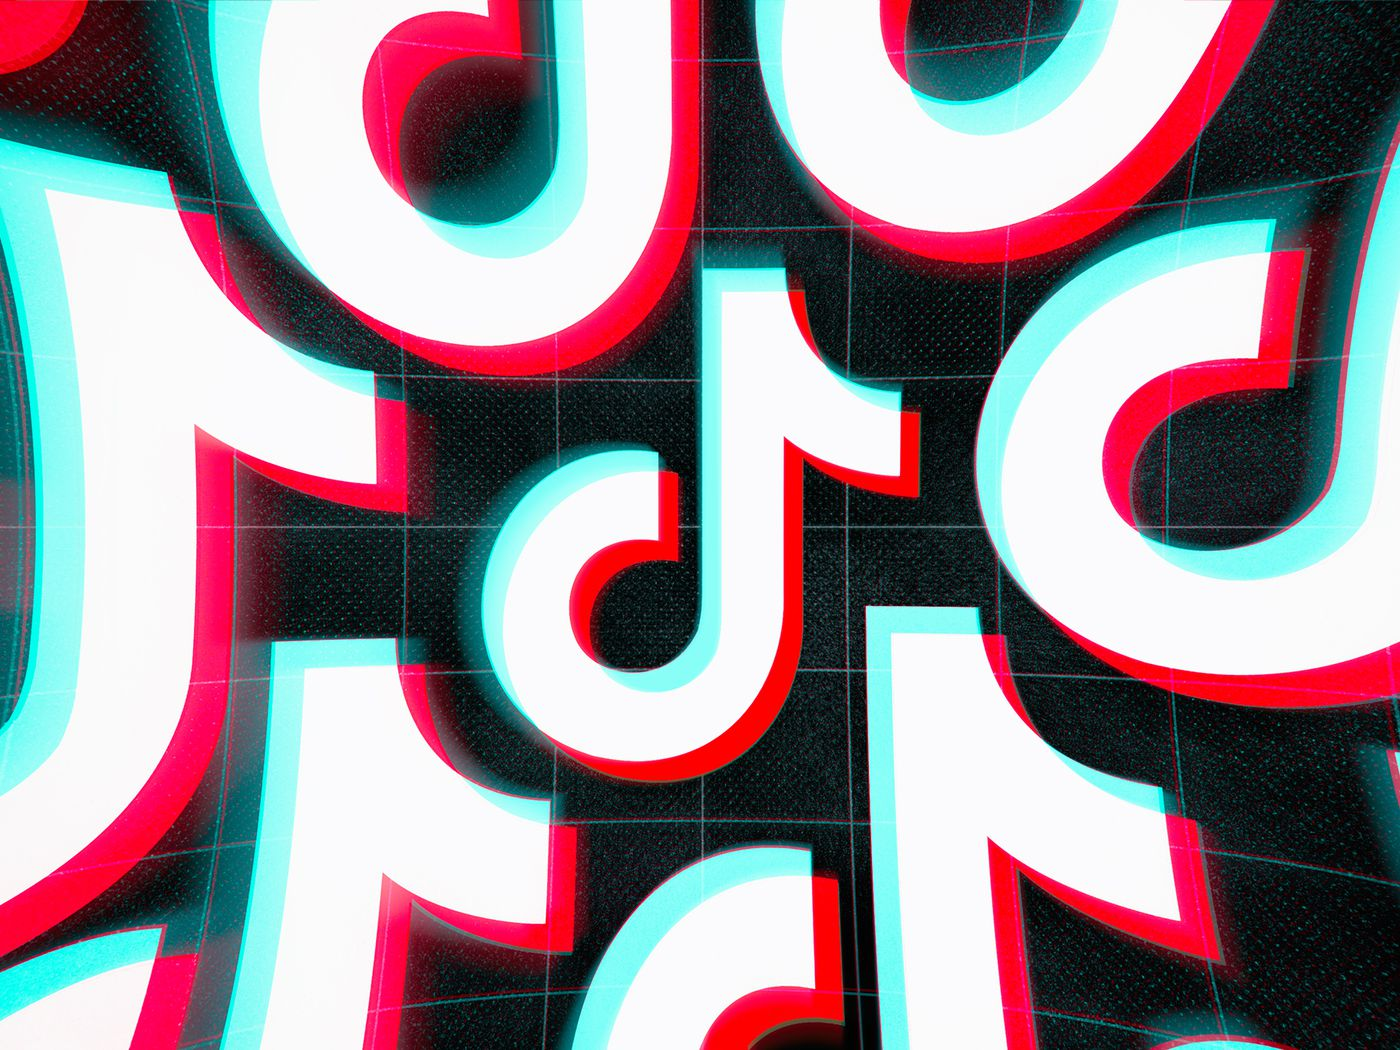 TikTok's a year old, when will its creators make money? - The Verge